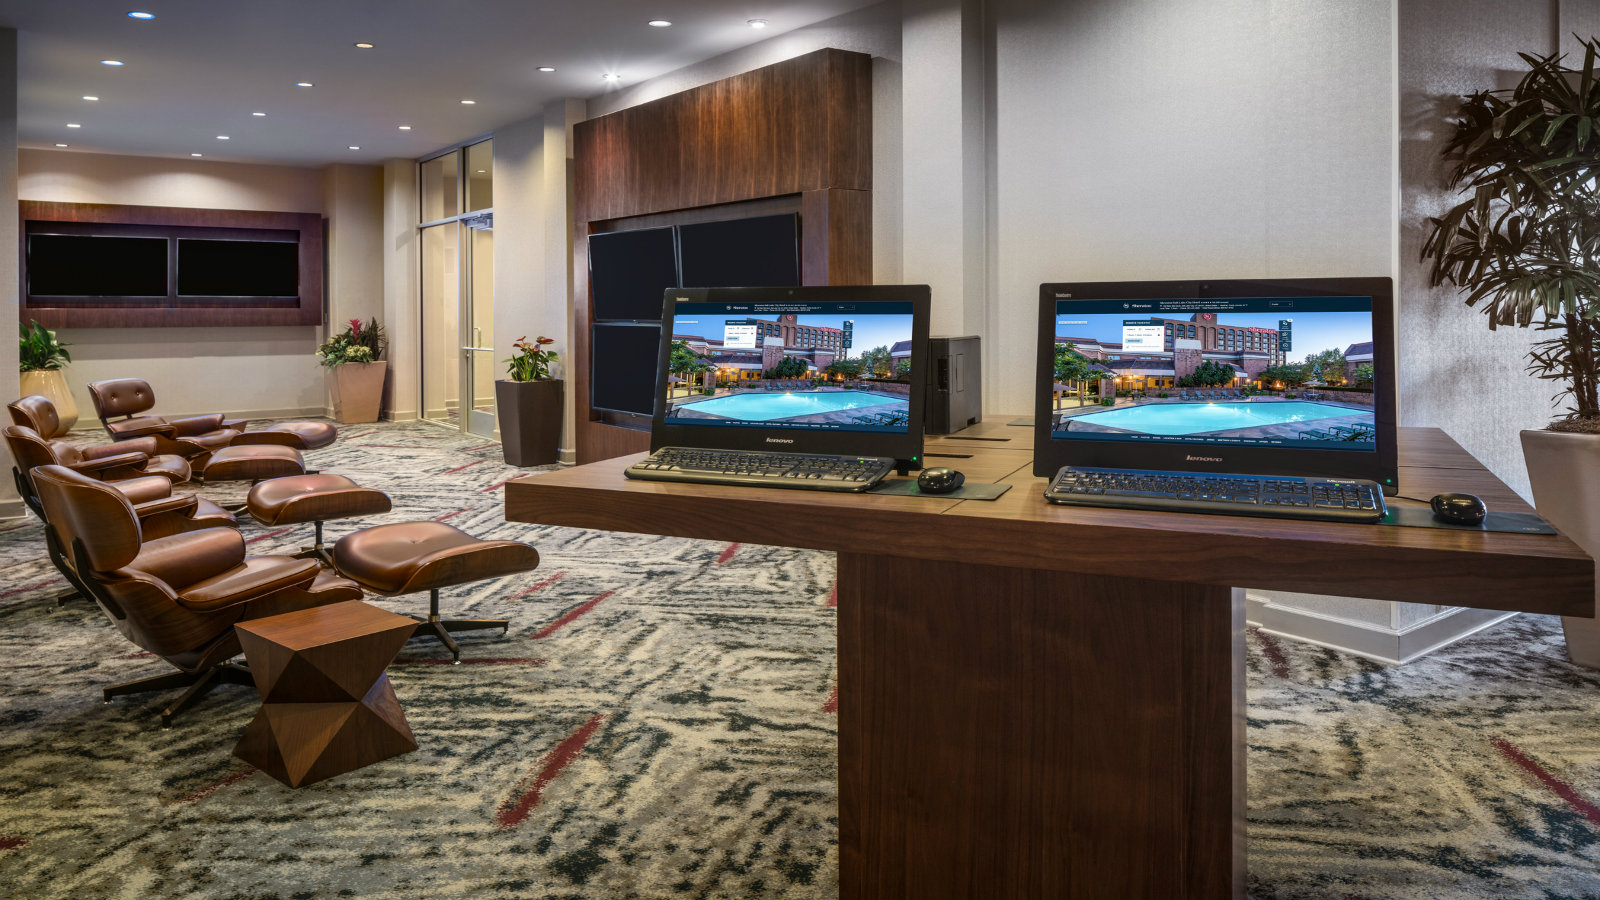 Meeting Rooms in Salt Lake City - Business Center